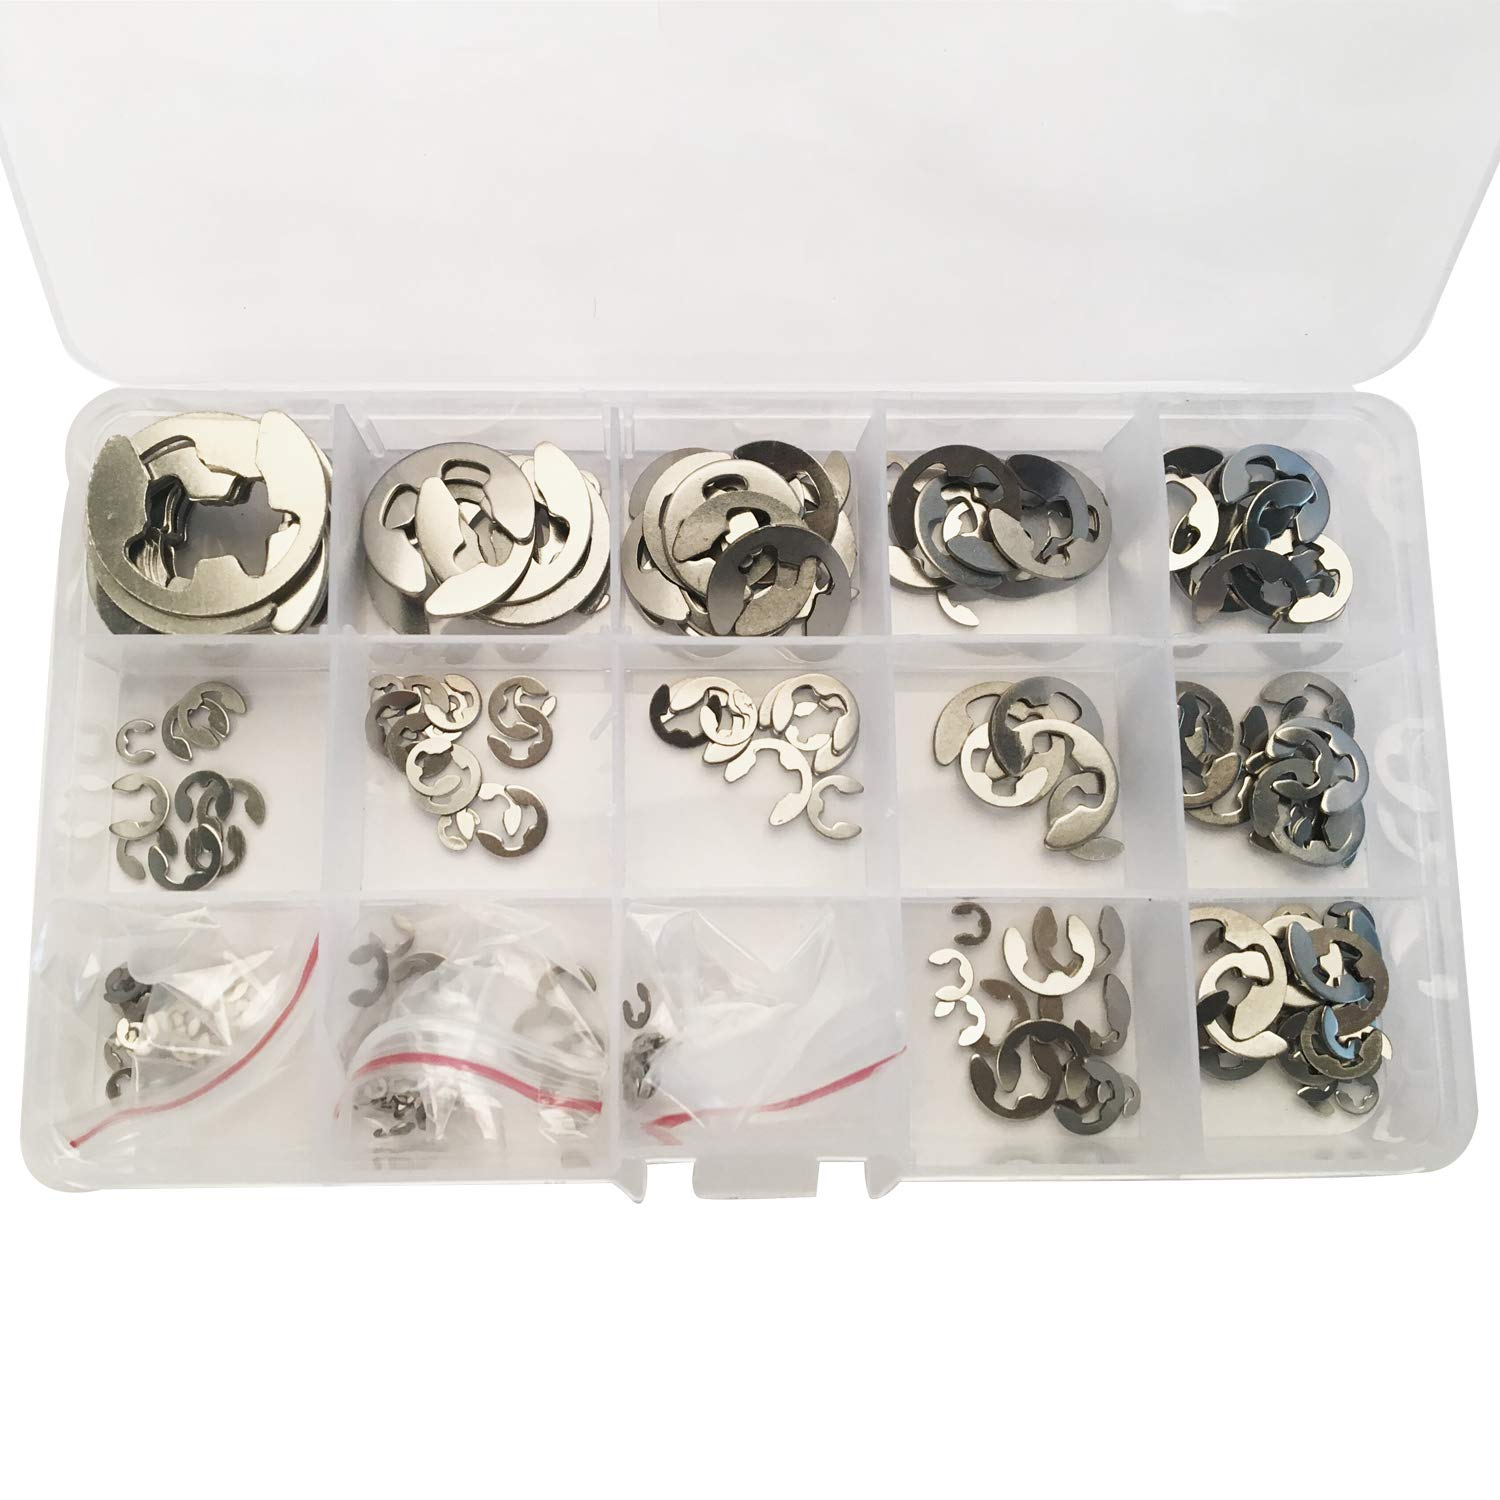 E-Clip External Retaining Ring Assortment Set